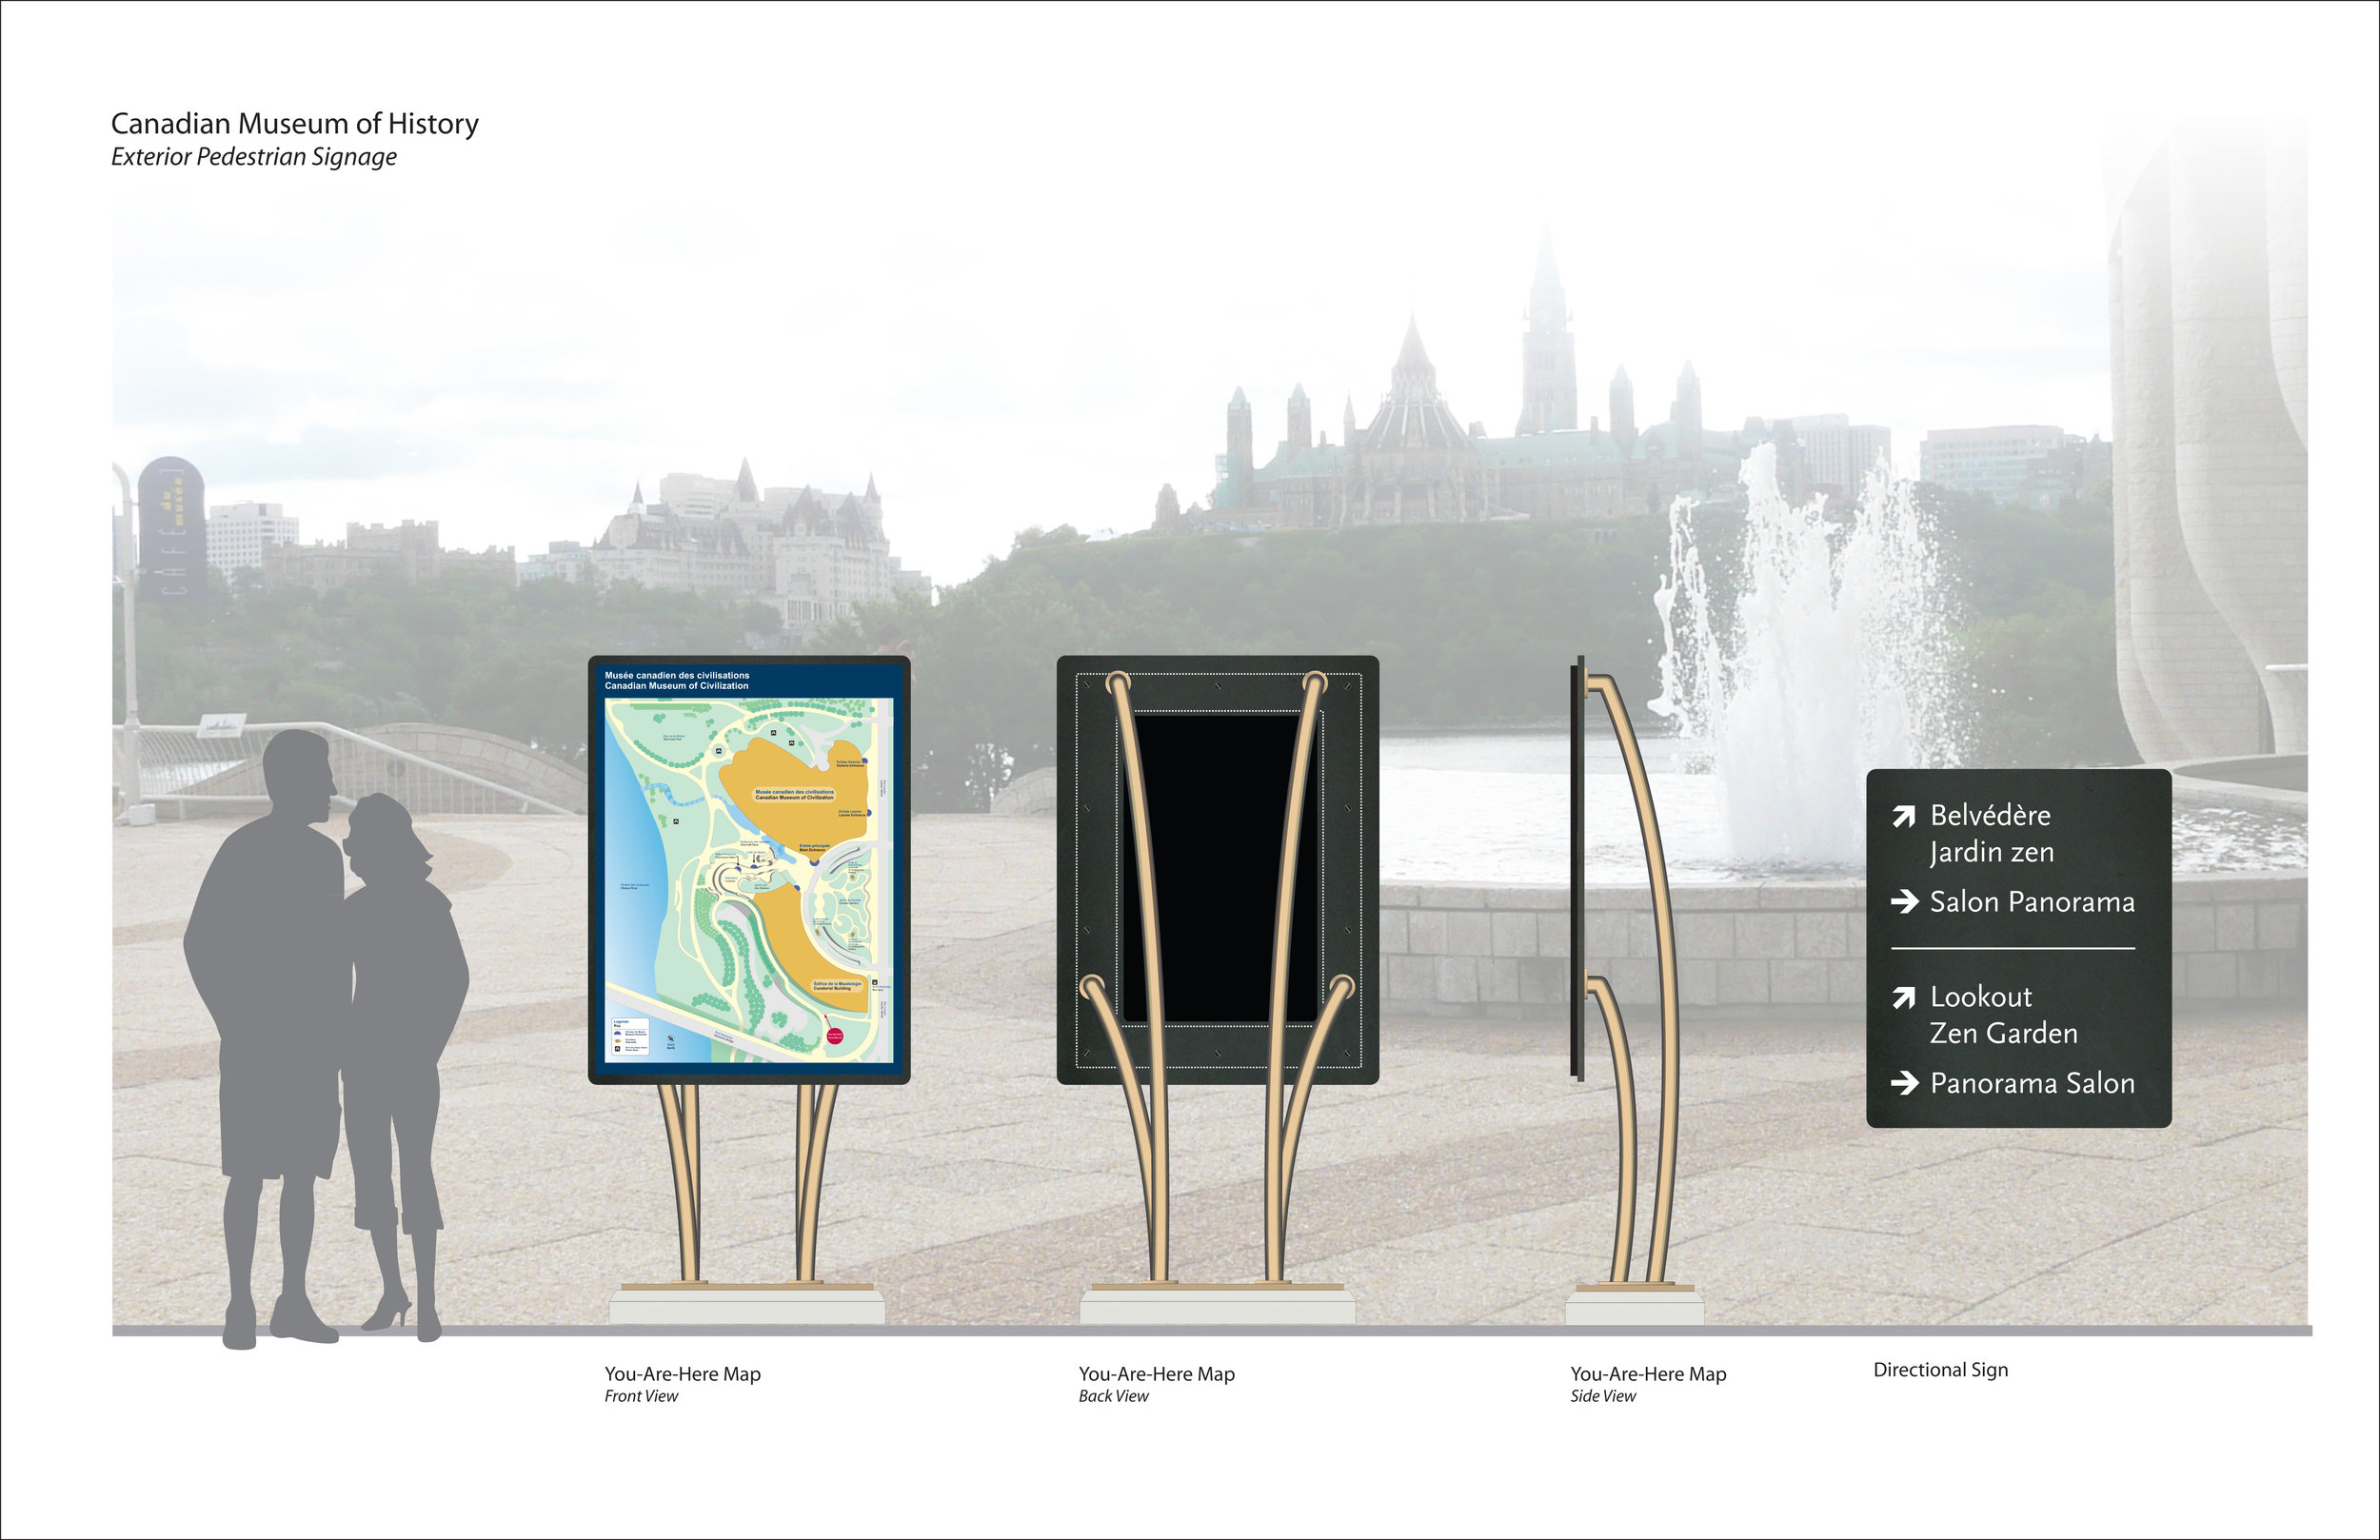 Signage Design Drawing For Canadian War Museum